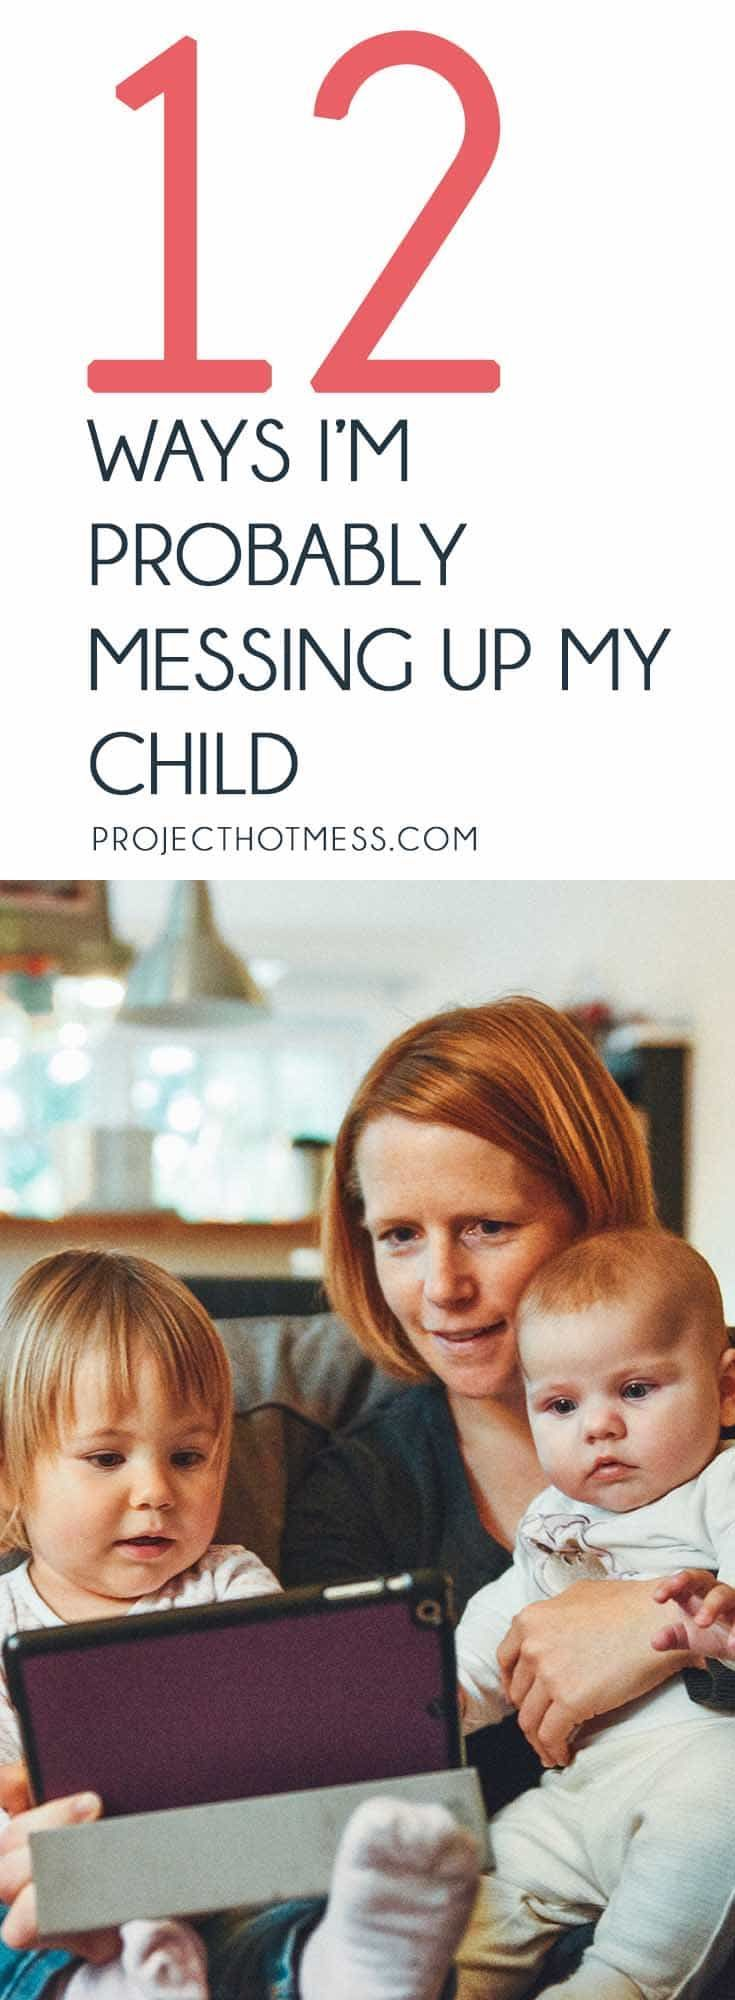 Parenting is hard. I literally stay awake at night thinking I'm probably messing up my child. What some say is right others say is wrong. It's a tough job! There's probably a million ways to mess up a child, these are the ones I stress about. Parenting | Parenting Advice | Mom Life | Parenting Goals | Parenting Ideas | Parenting Tips | Parenting Types | Parenting Hacks | Positive Parenting | Parenthood | Motherhood | Surviving Motherhood